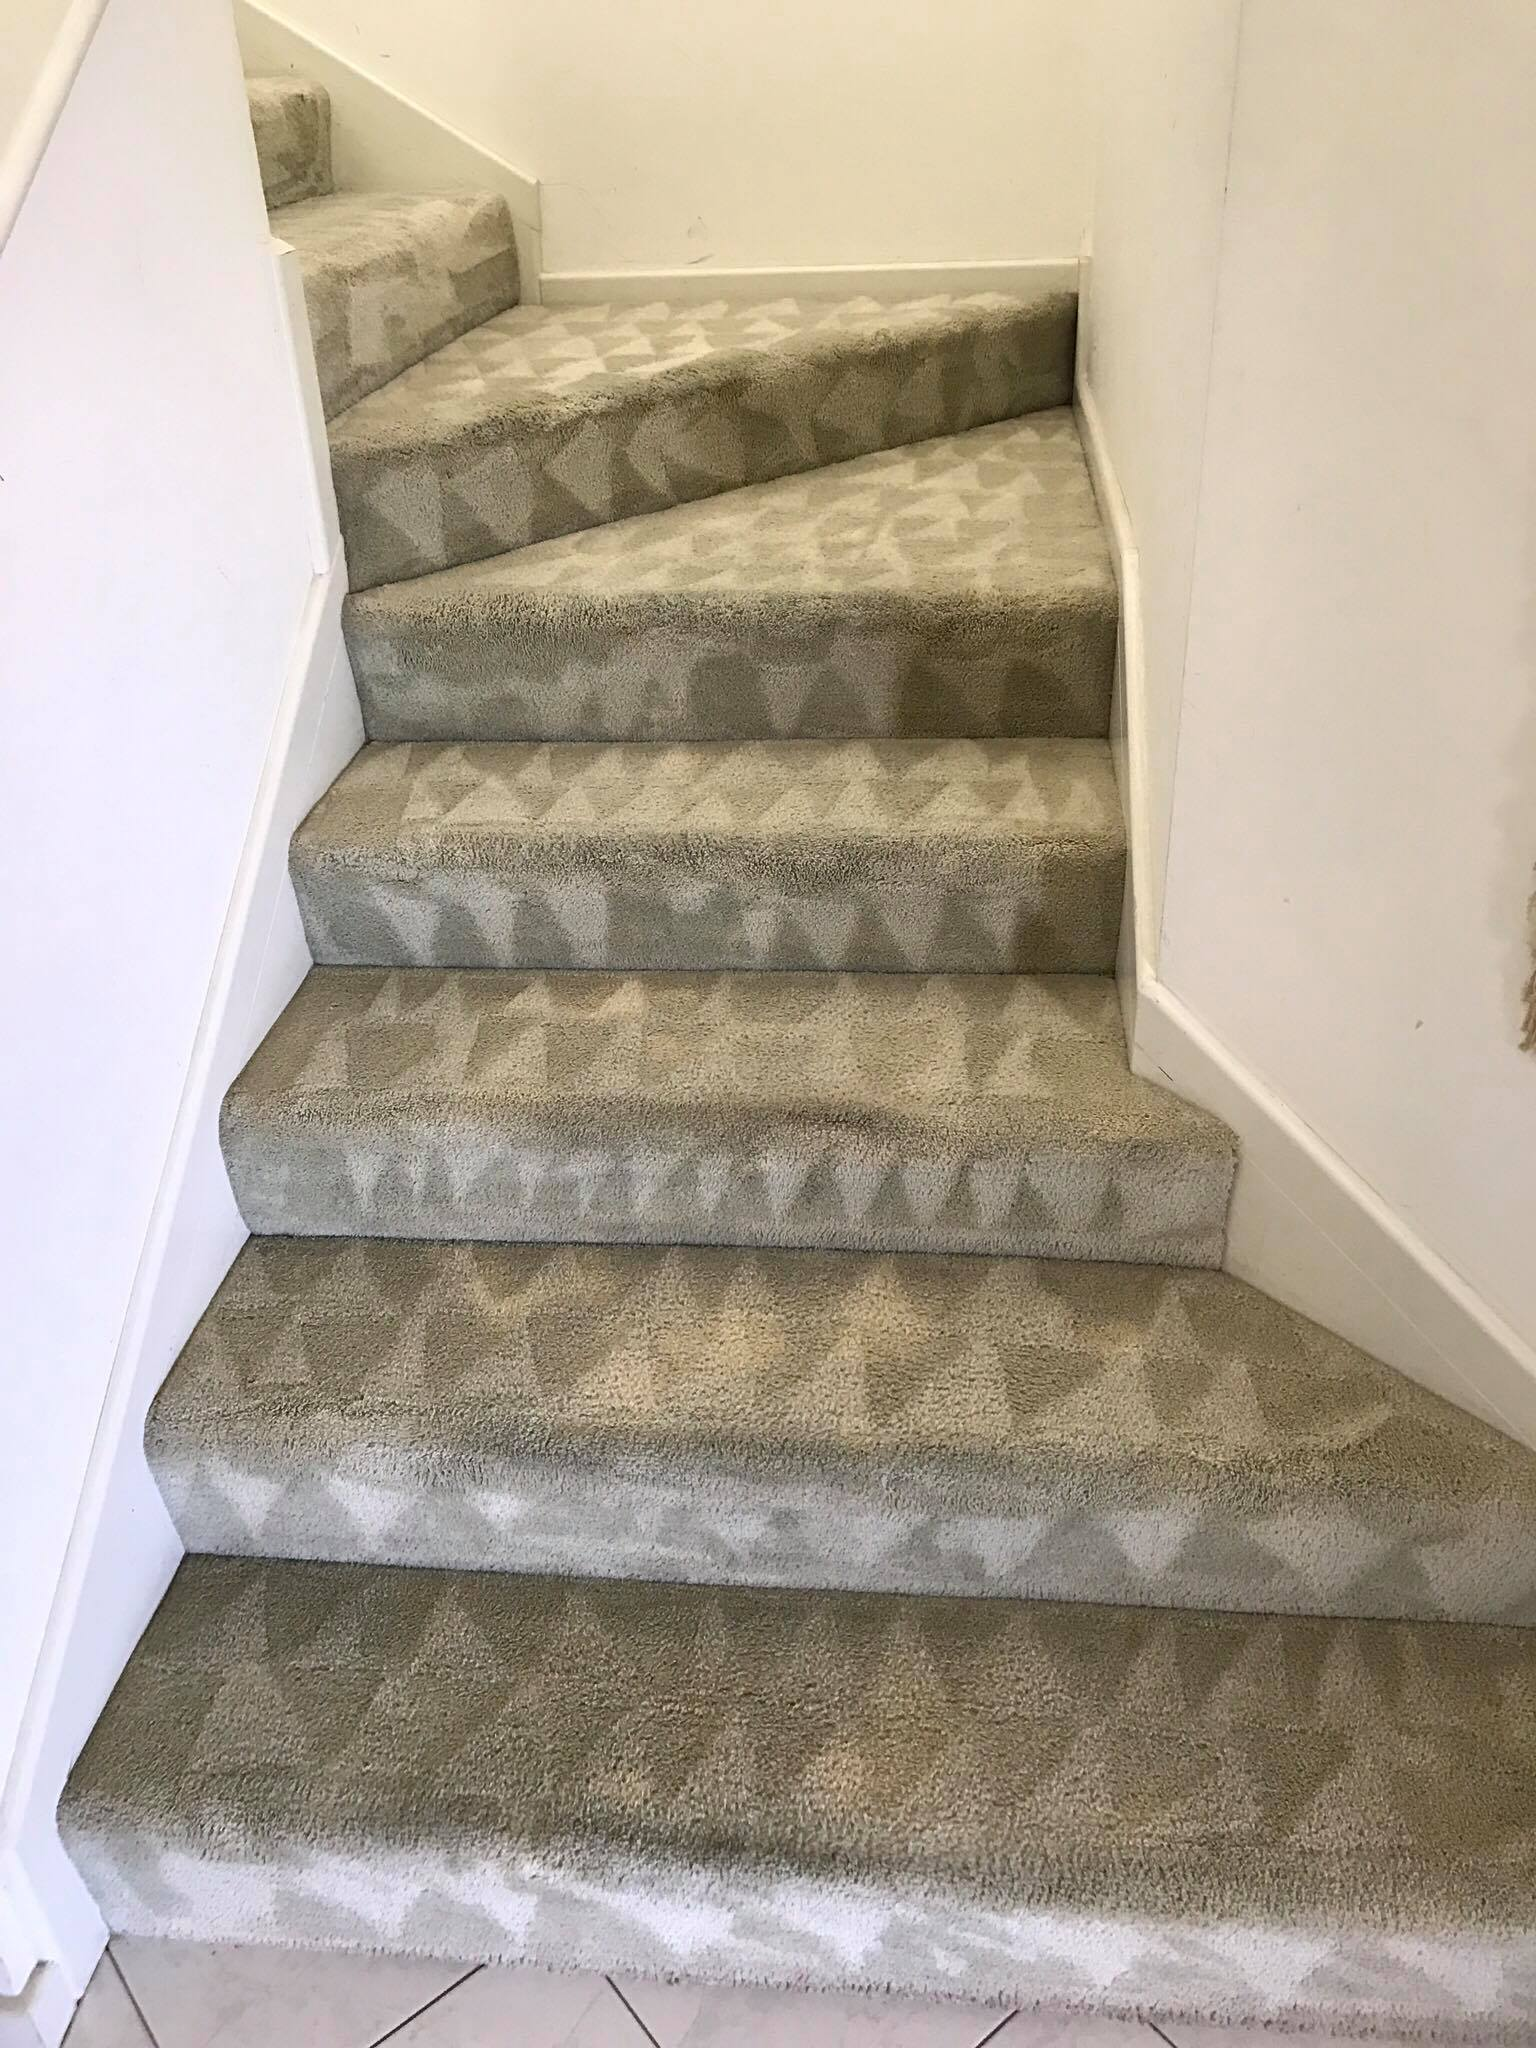 View of stairway carpet before cleaning